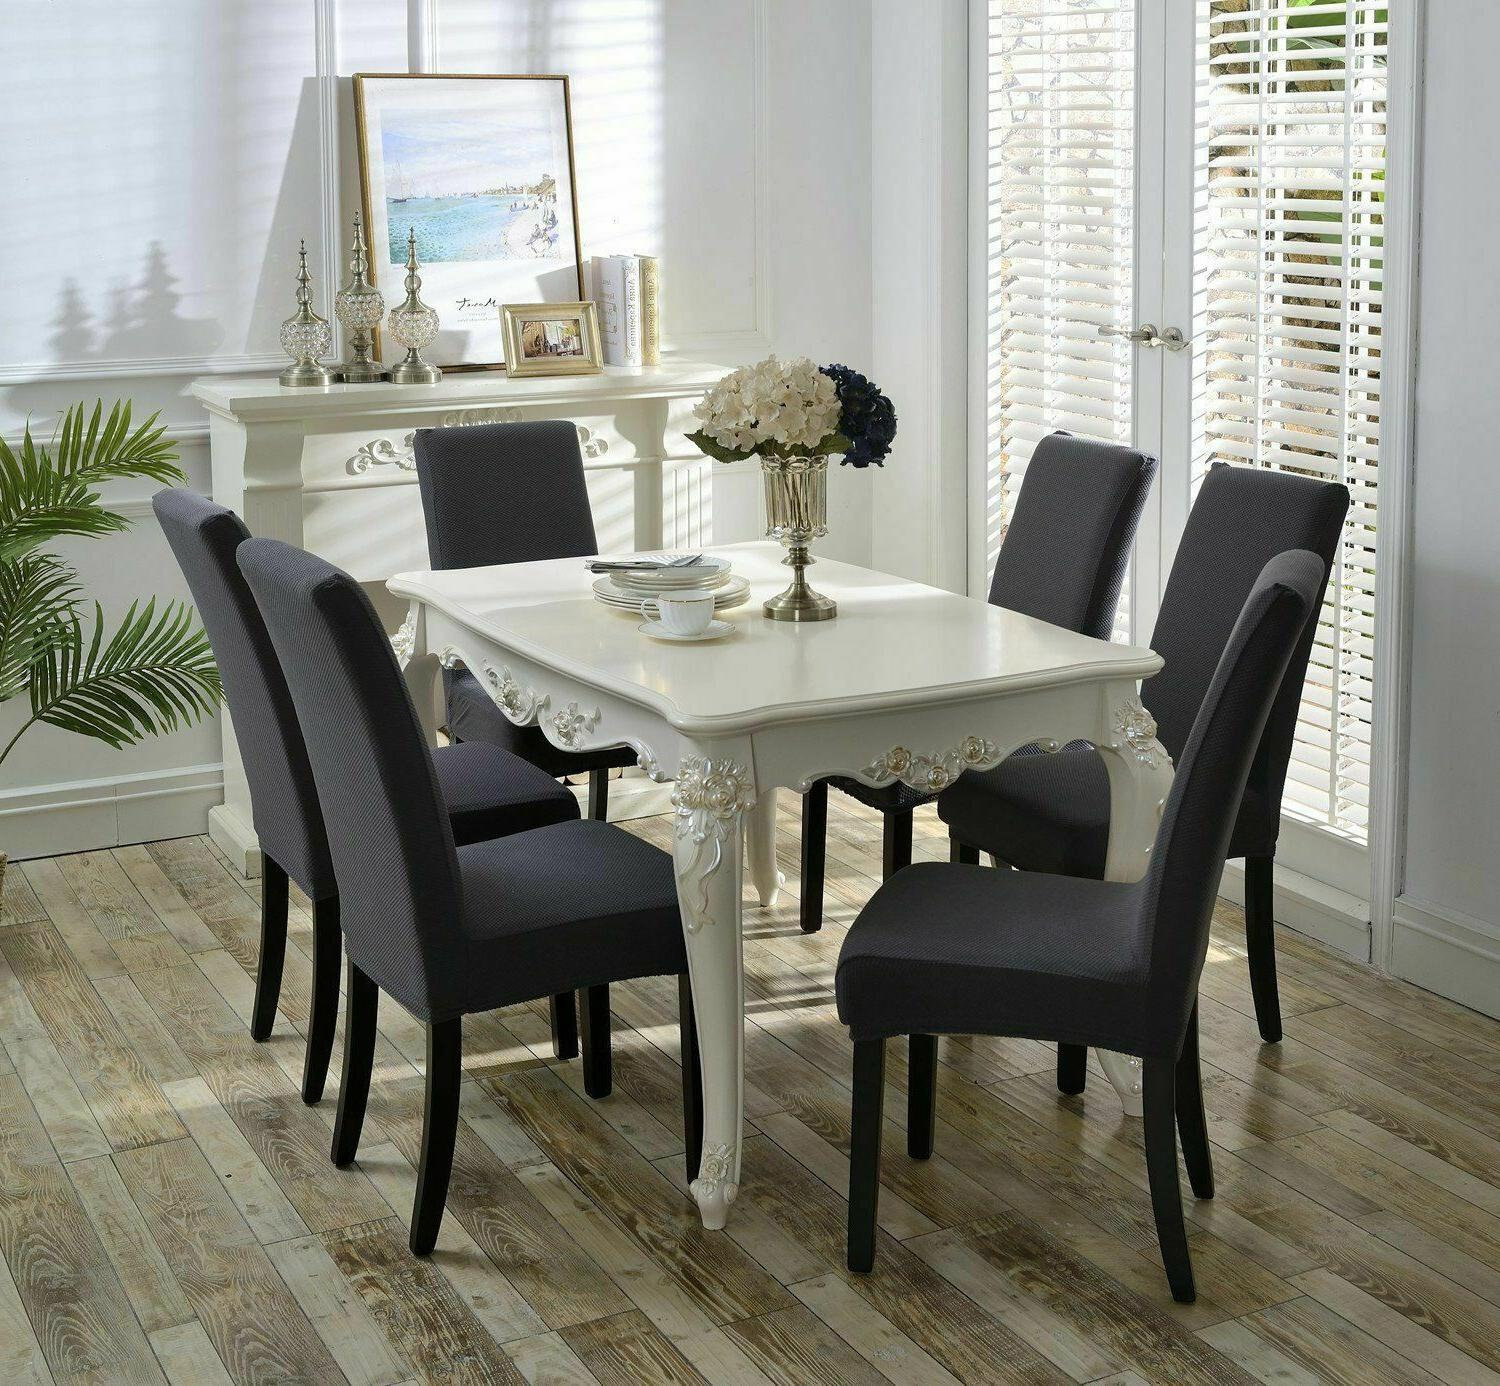 Homluxe Spandex Stretch Dining Chair 4-Pack!